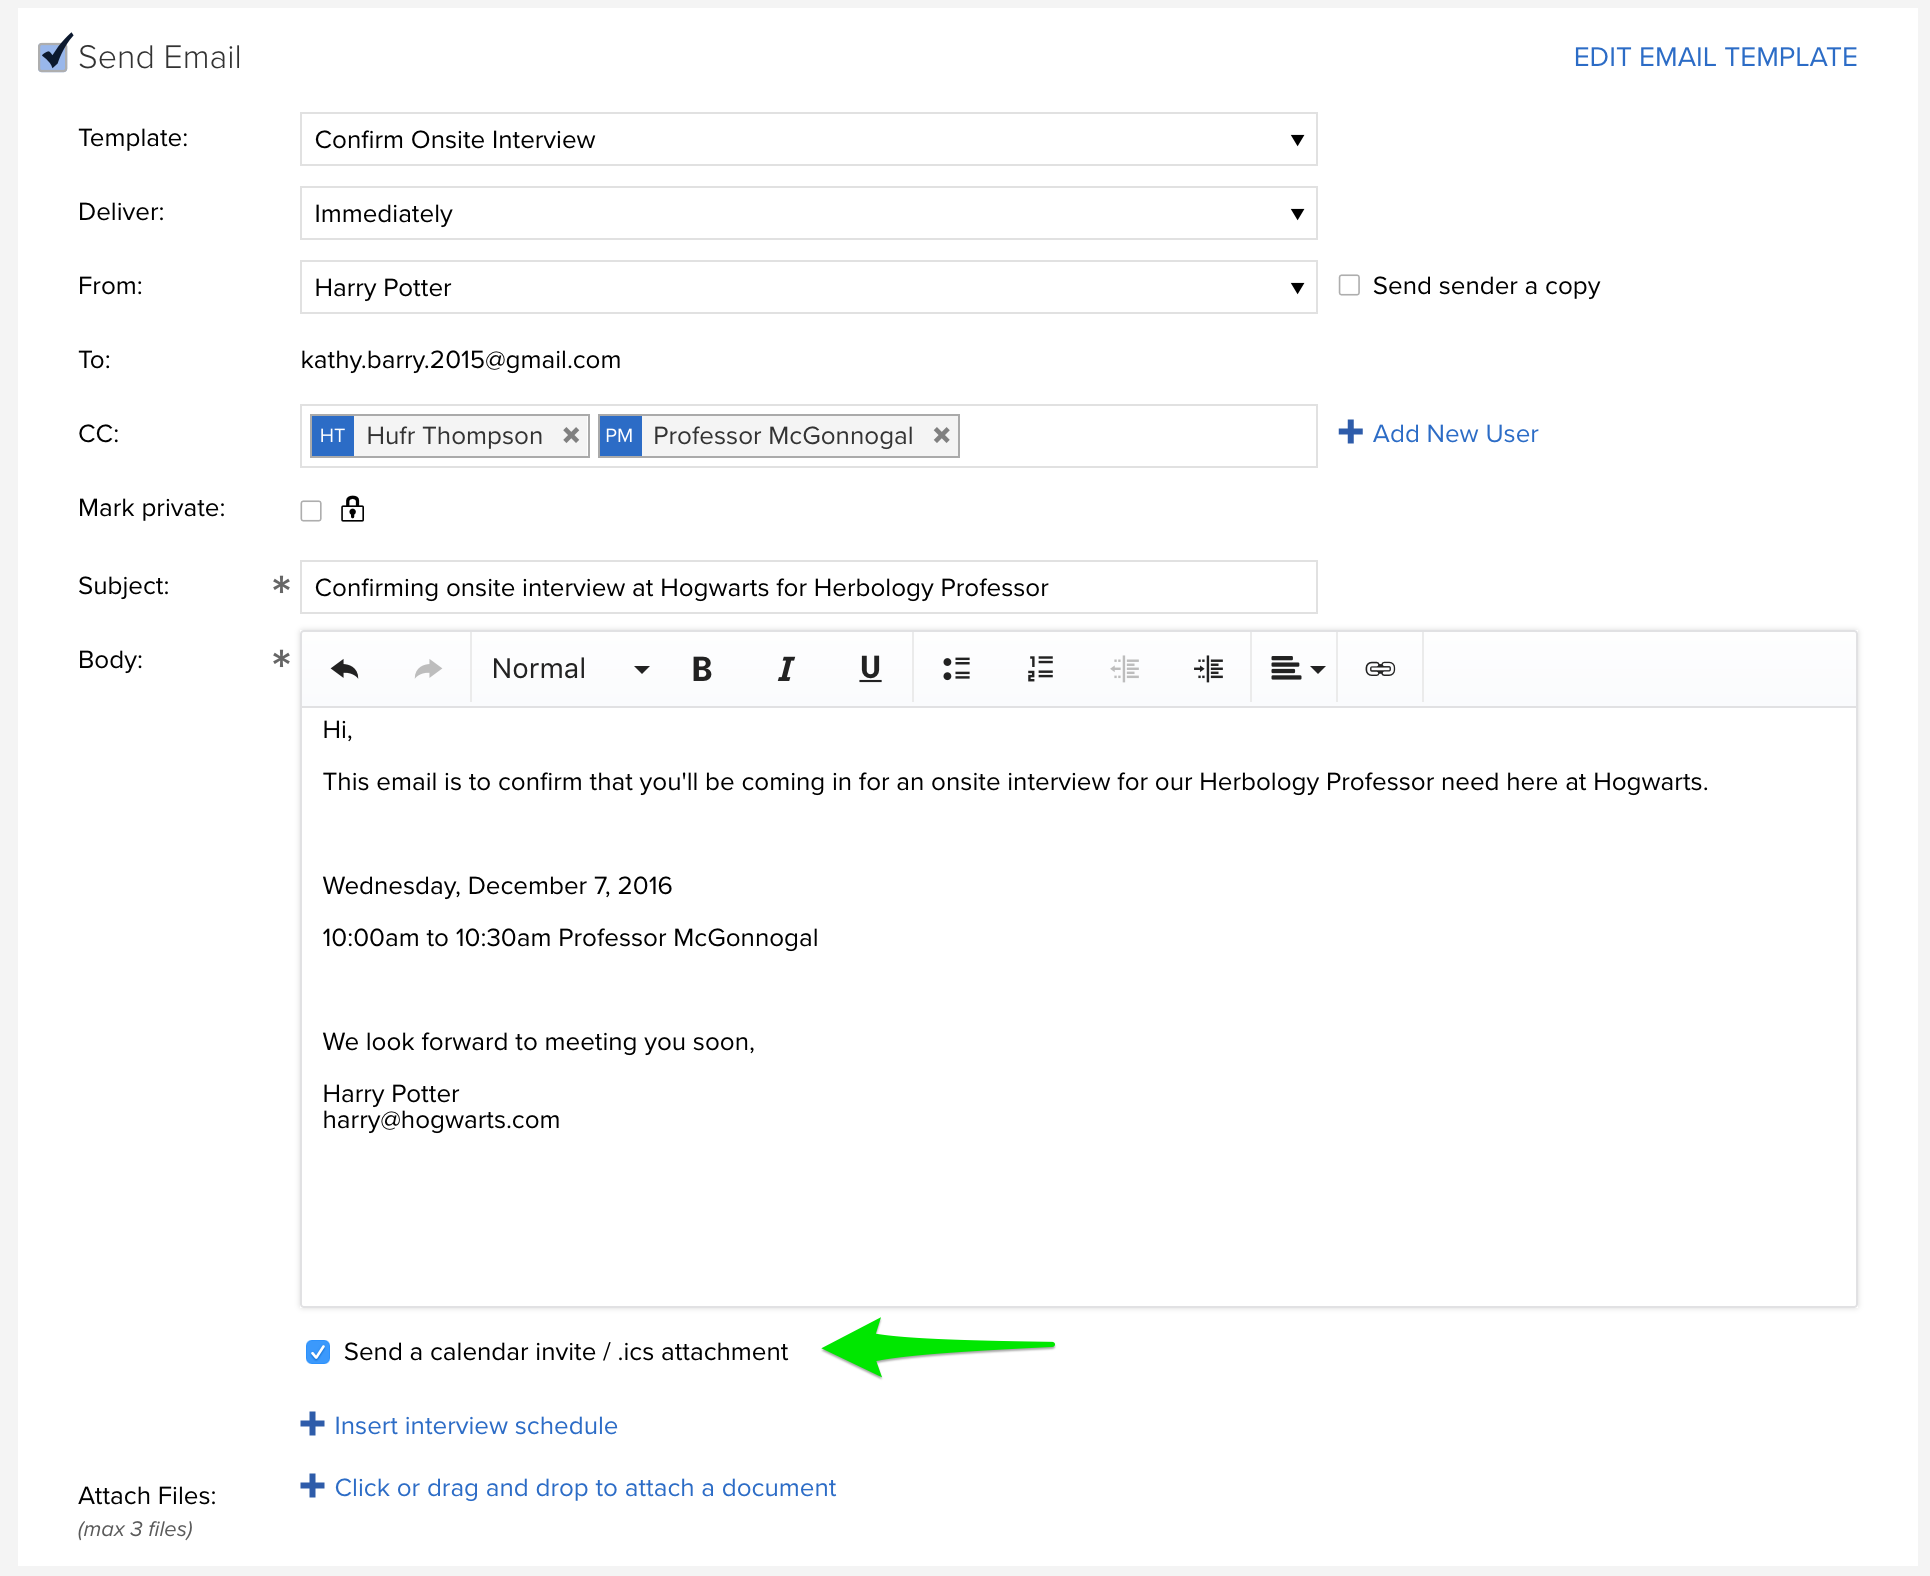 updates what s new in jobscore this means that a calendar invitation will be included in your email this invitation an ics attachment makes it easy for the candidate to add the